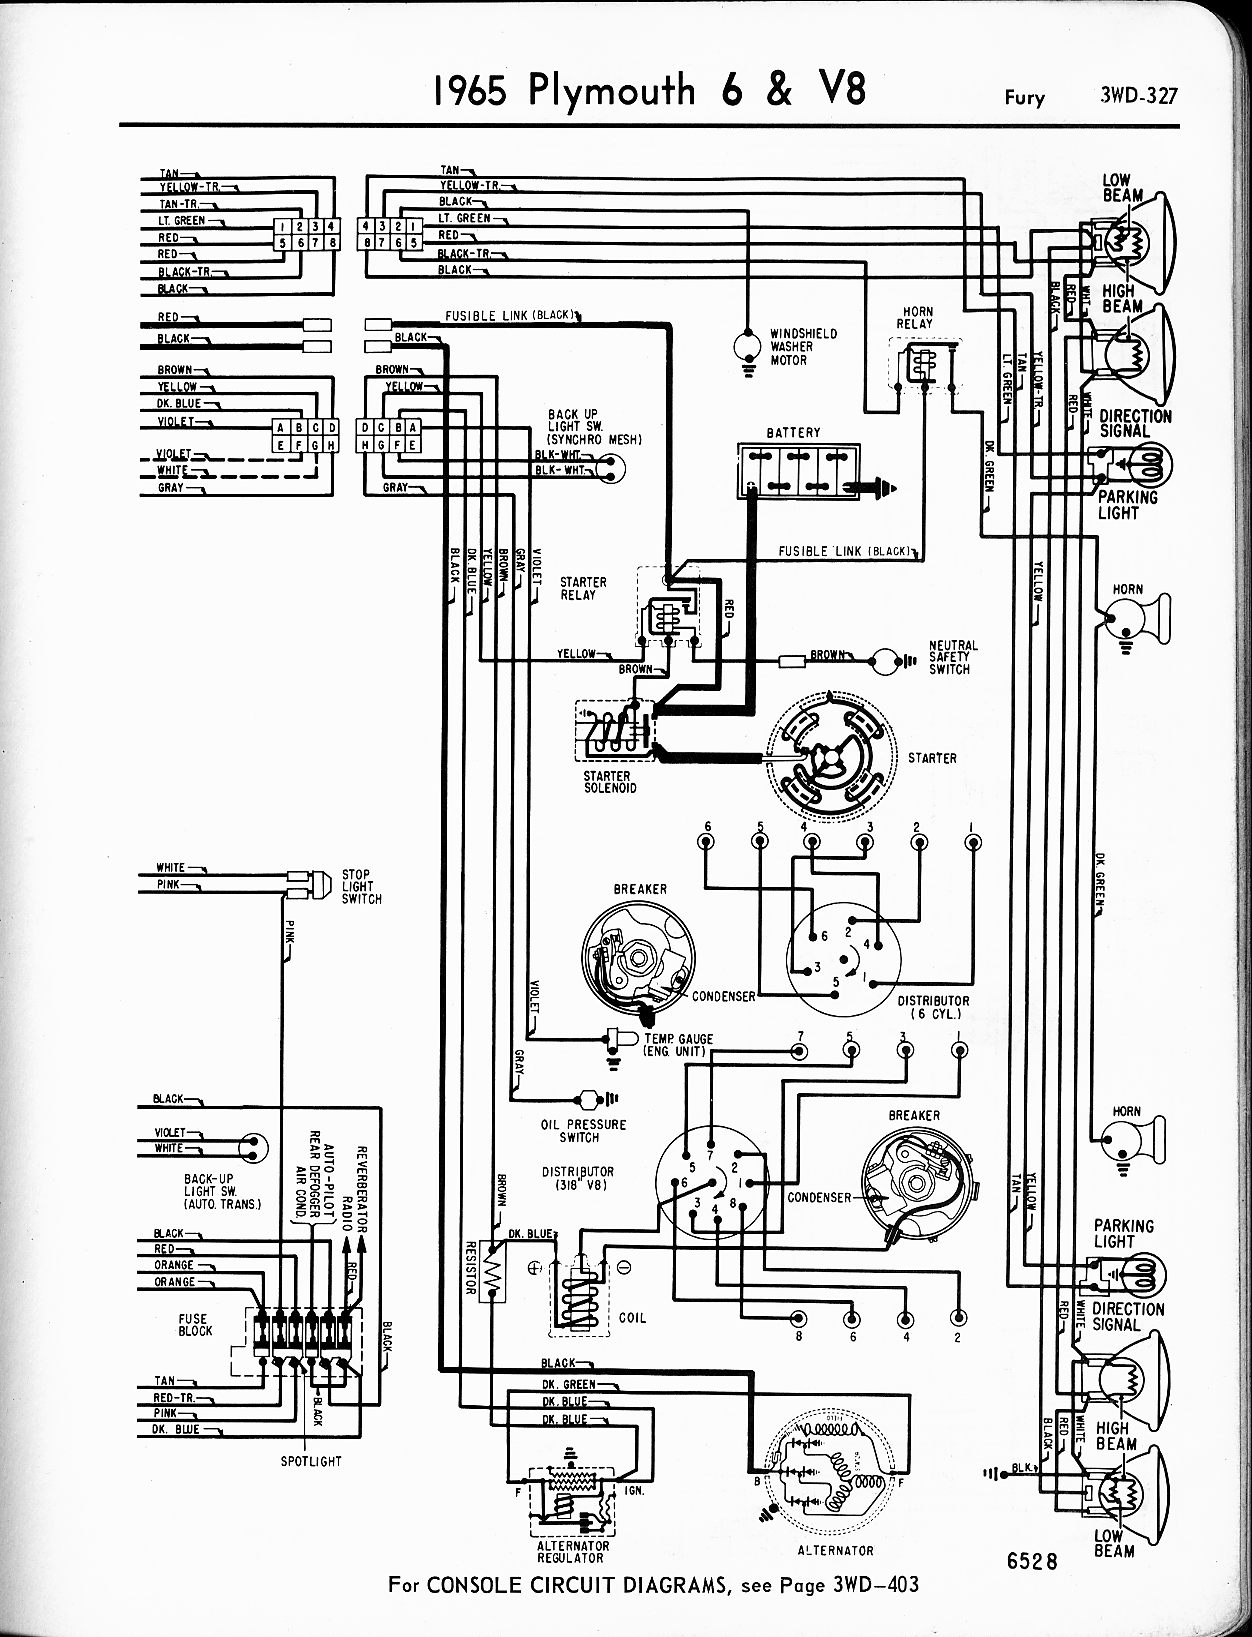 1976 Plymouth Ignition Wiring Diagram Free For You 1966 Ford F100 Engine Picture 1956 1965 The Old Car Manual Project Rh Oldcarmanualproject Com Basic Chevy Switch